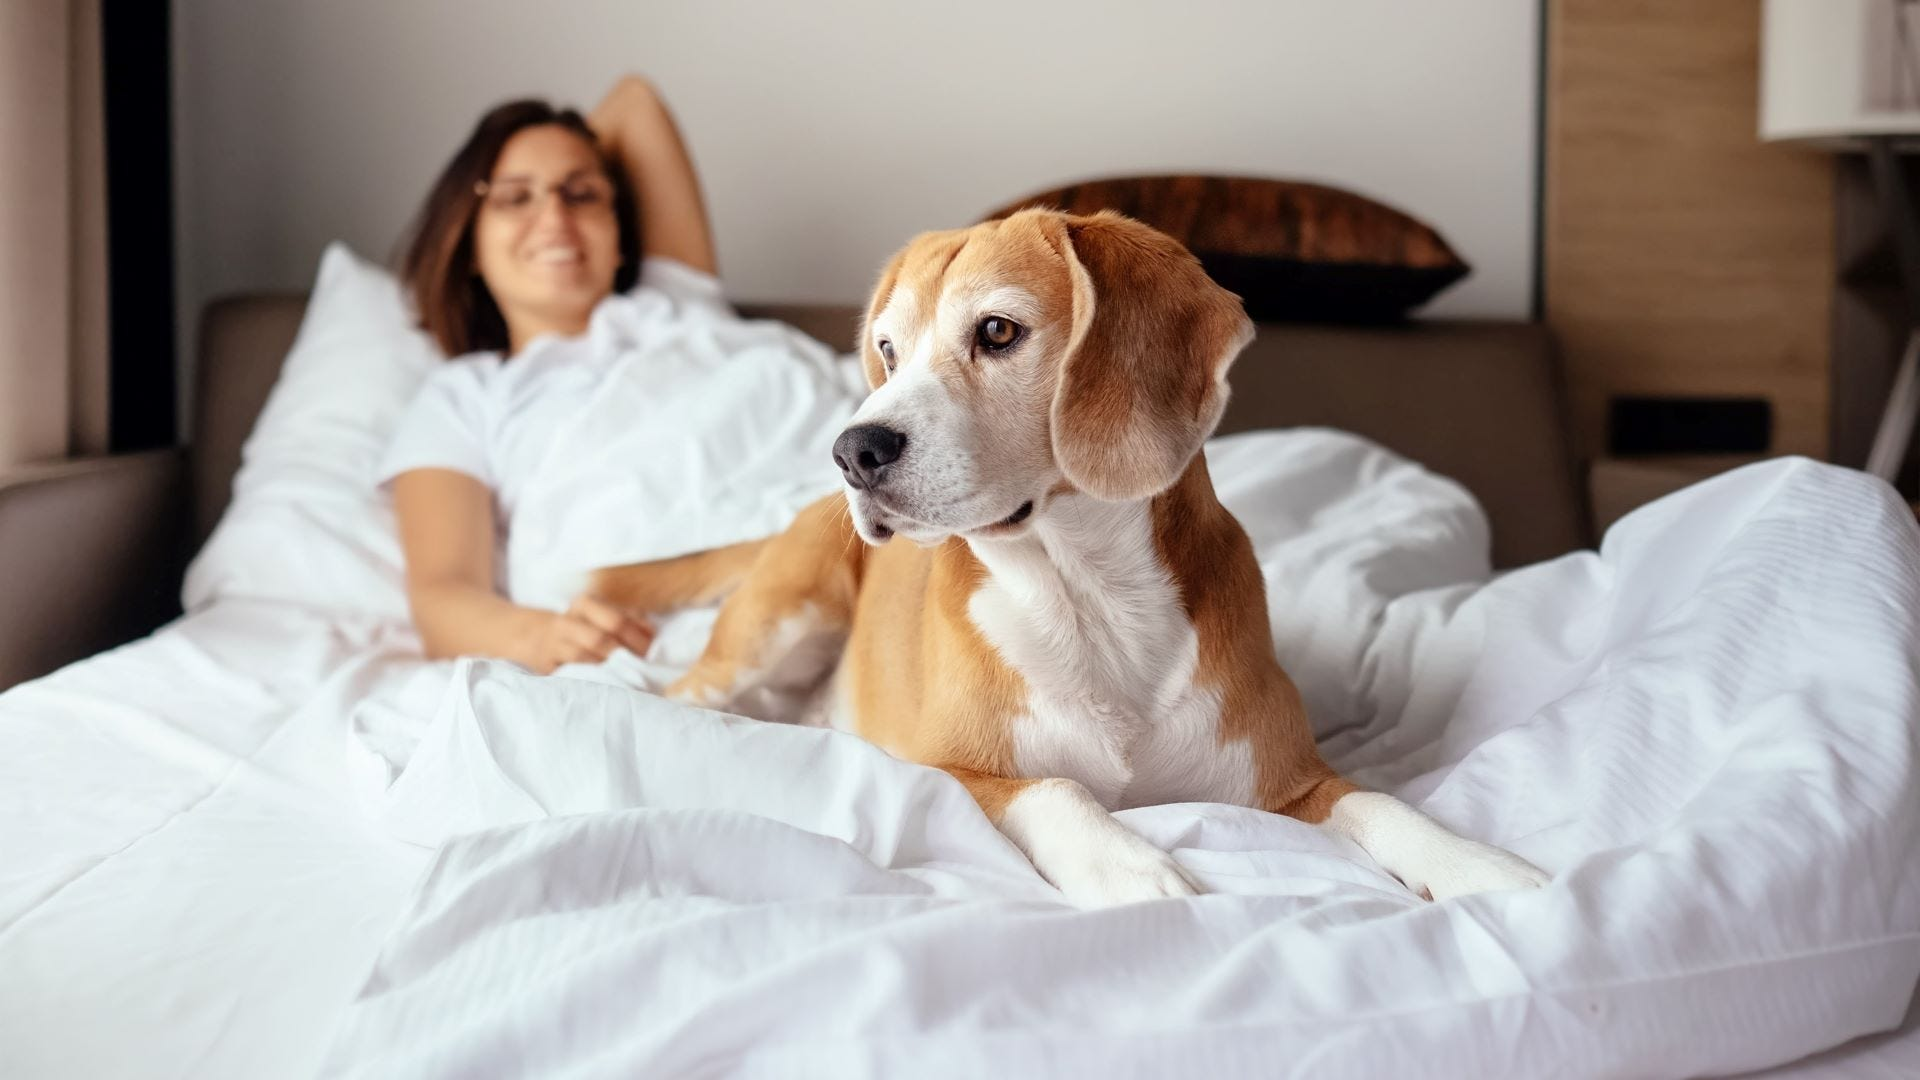 A woman in bed with a Beagle dog in a hotel room.